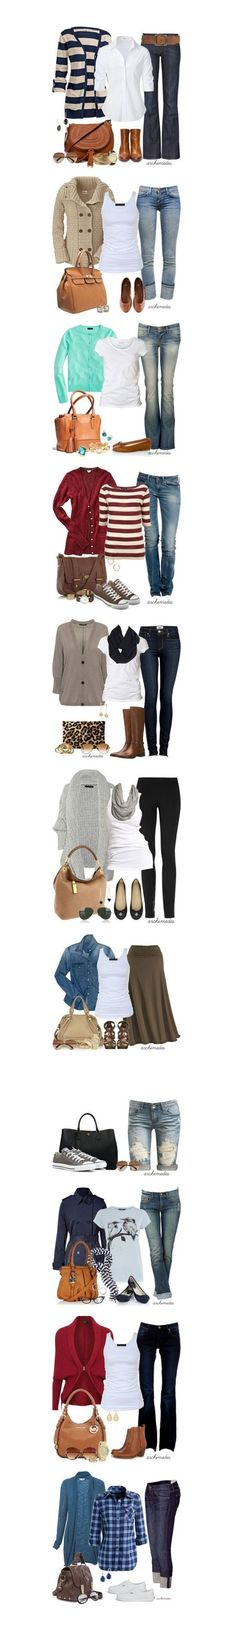 15 Casual Winter Fashion Trends Looks 2013 For Girls Women ...